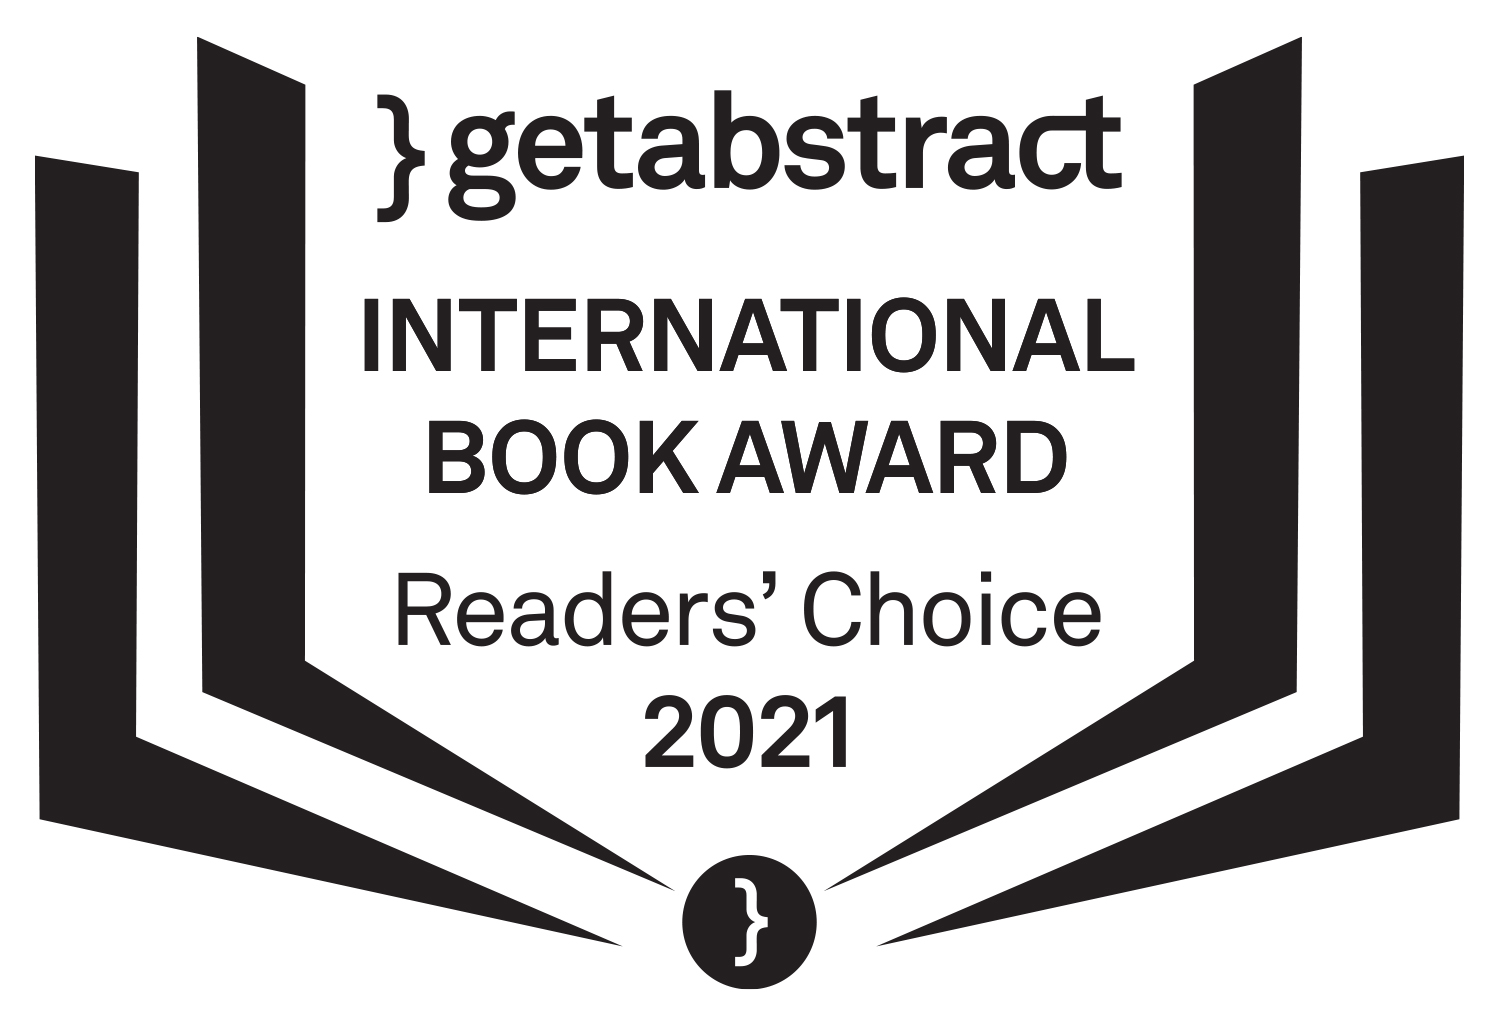 Vote Now for Your Book of the Year!